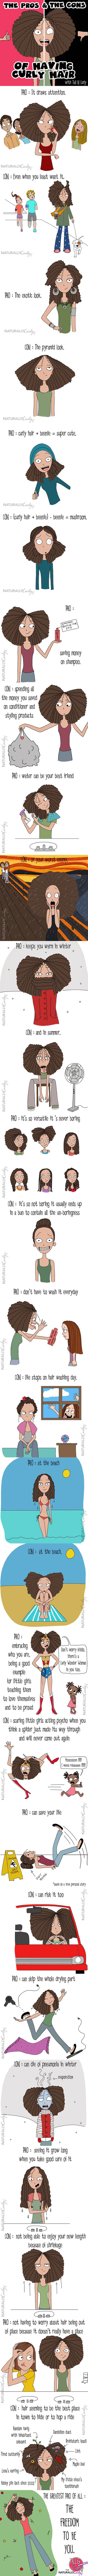 cool-pros-cons-curly-girl-comic